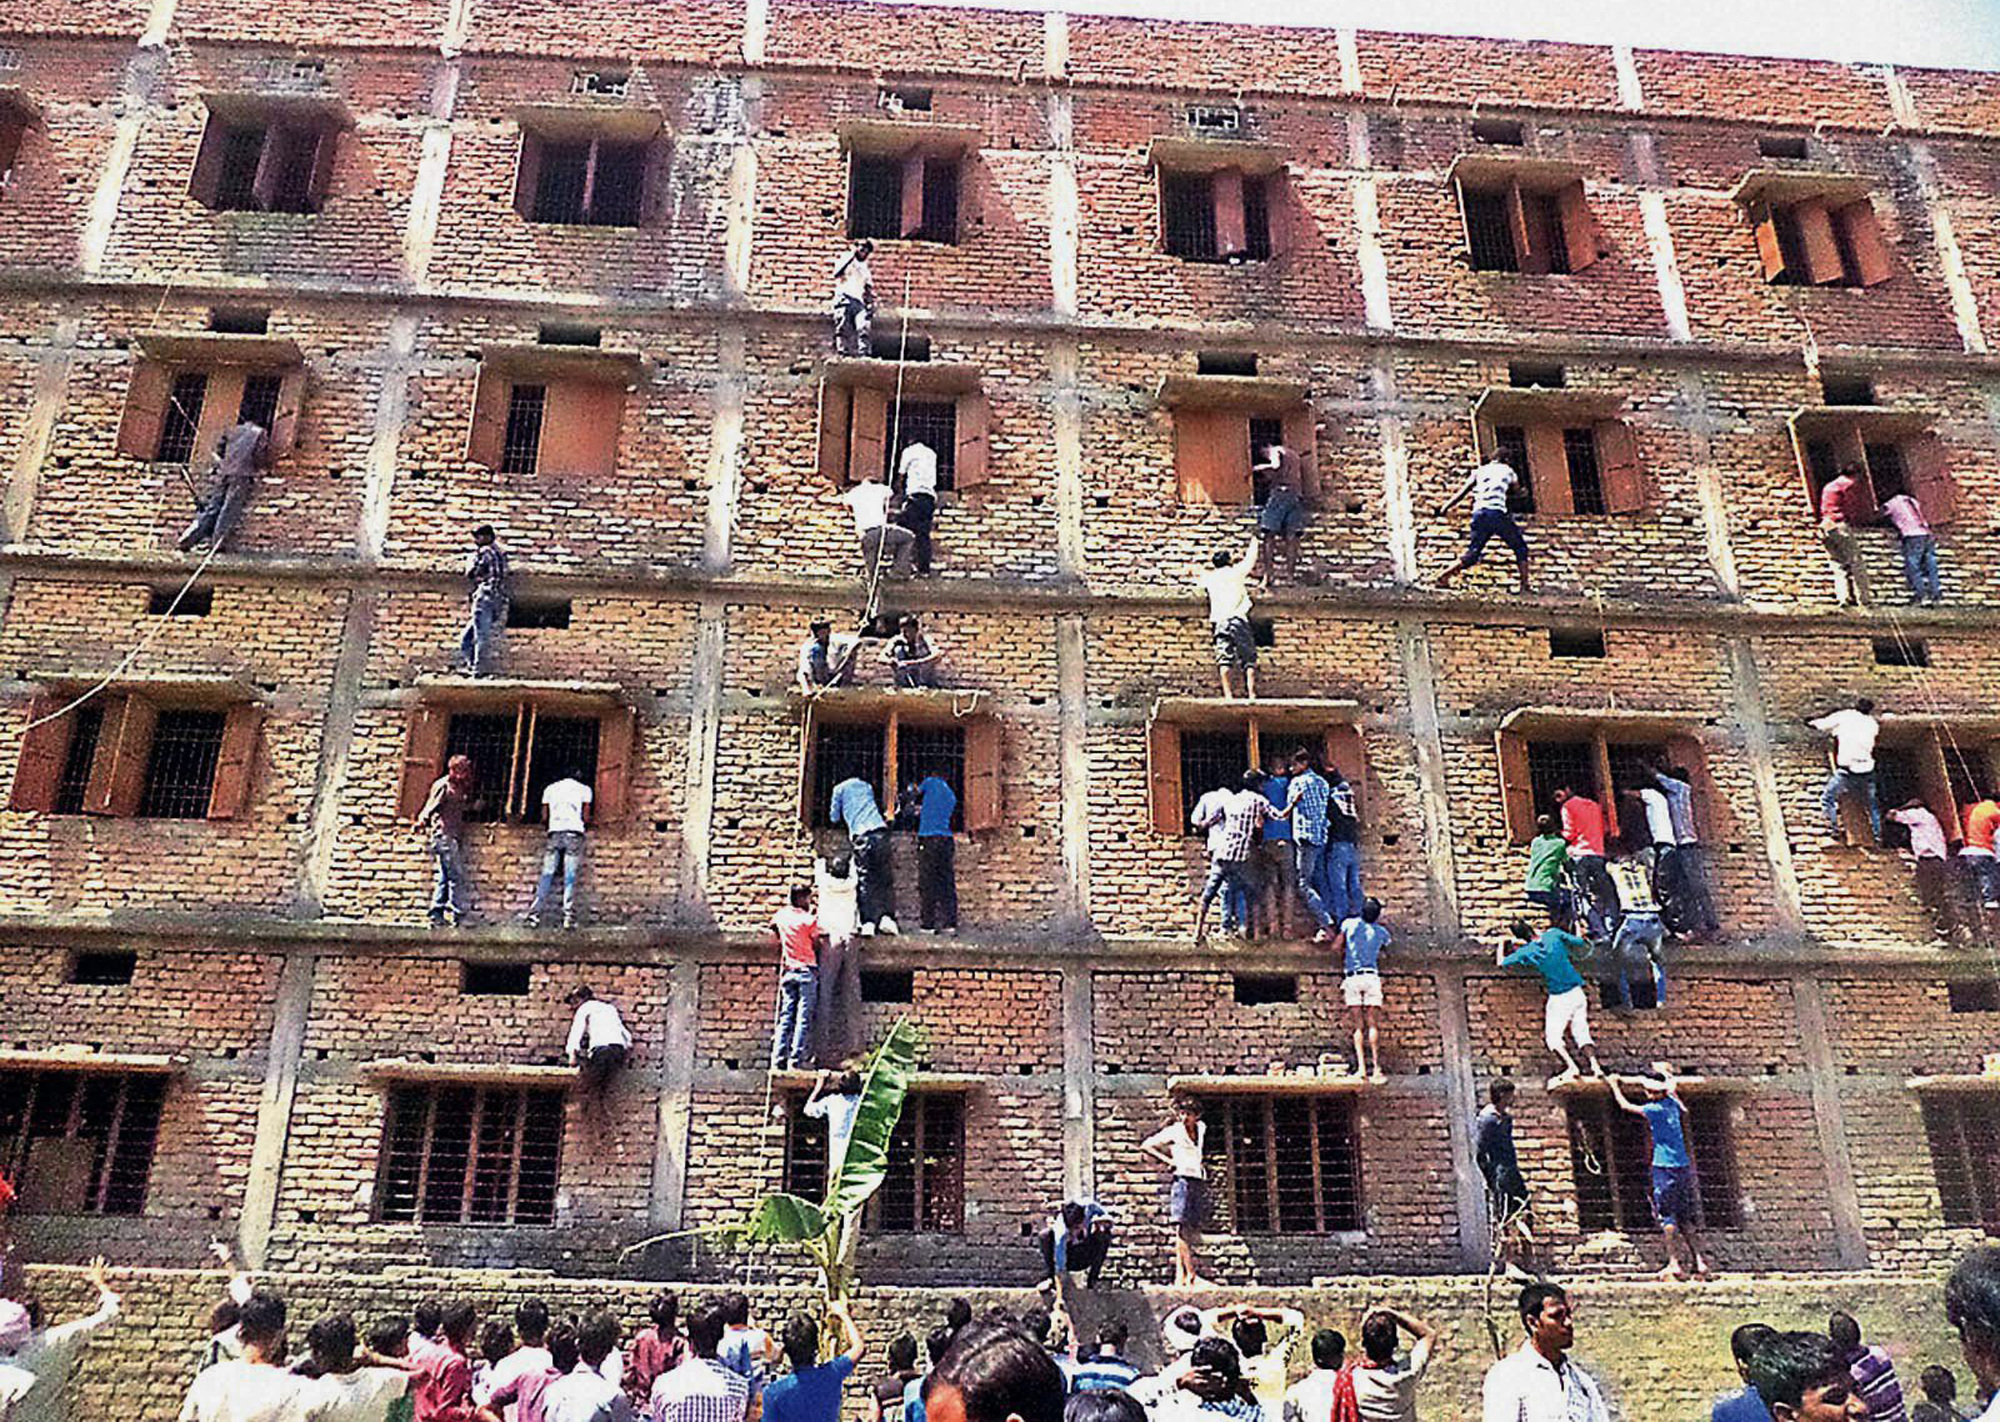 Indian parents scale school wall to help students cheat on exams